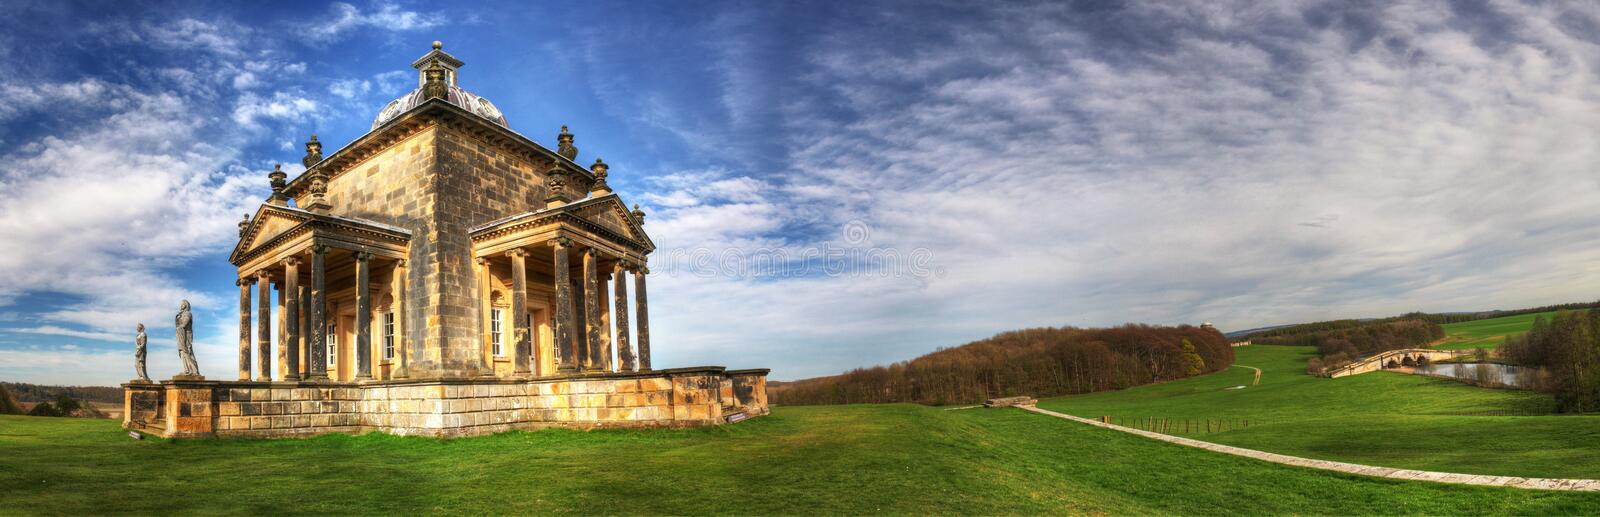 Temple Of Four Winds. At Castle Howard, North Yorkshire, UK stock image